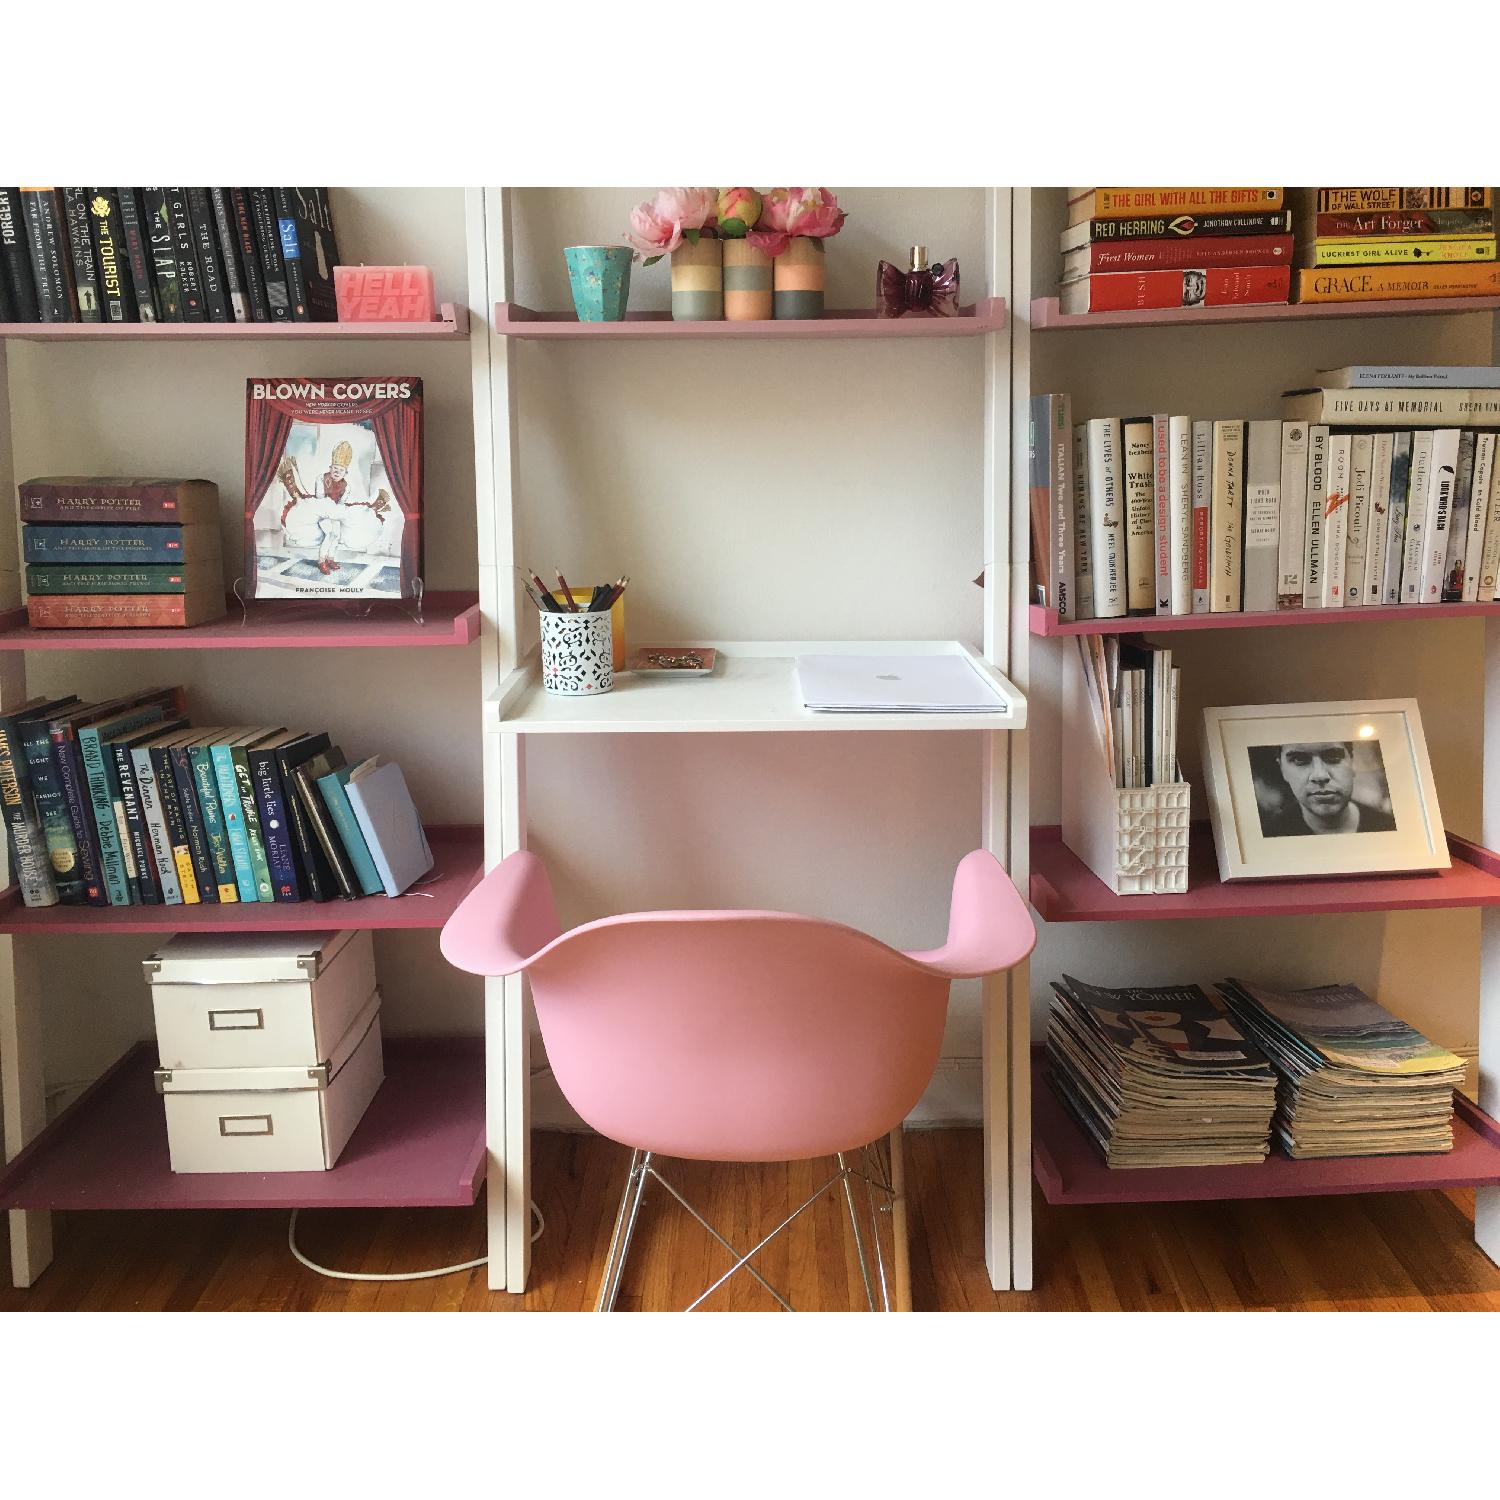 Pink Replica Eames Rocking Chair - image-3